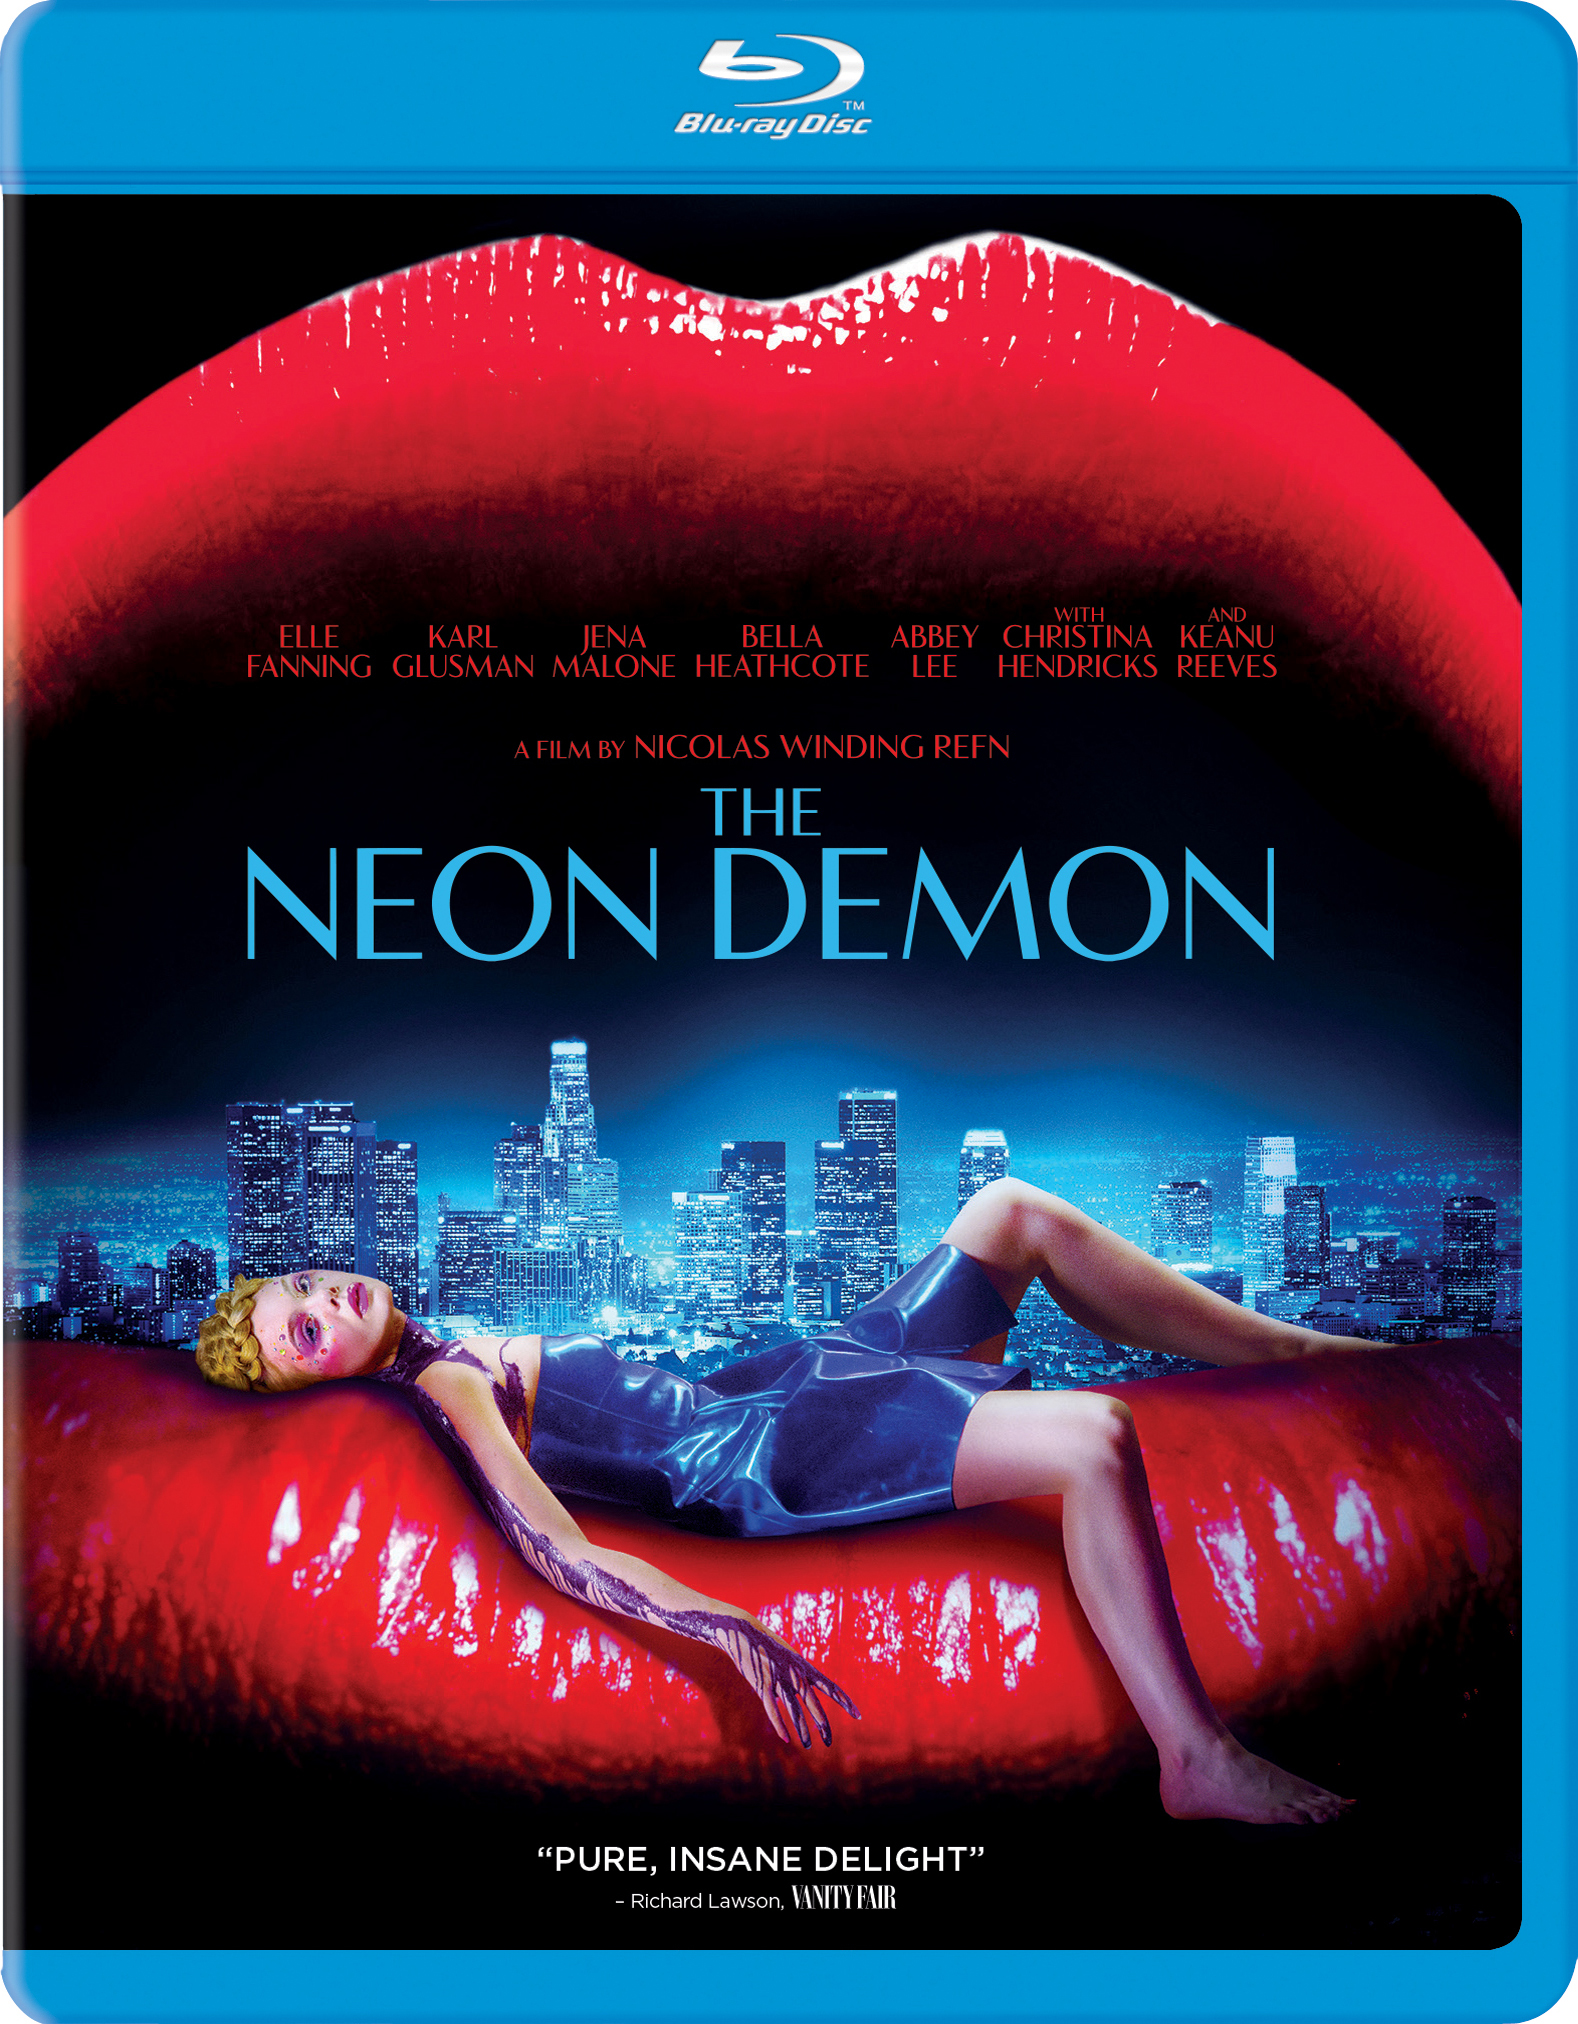 The Neon Demon (2016) poster image